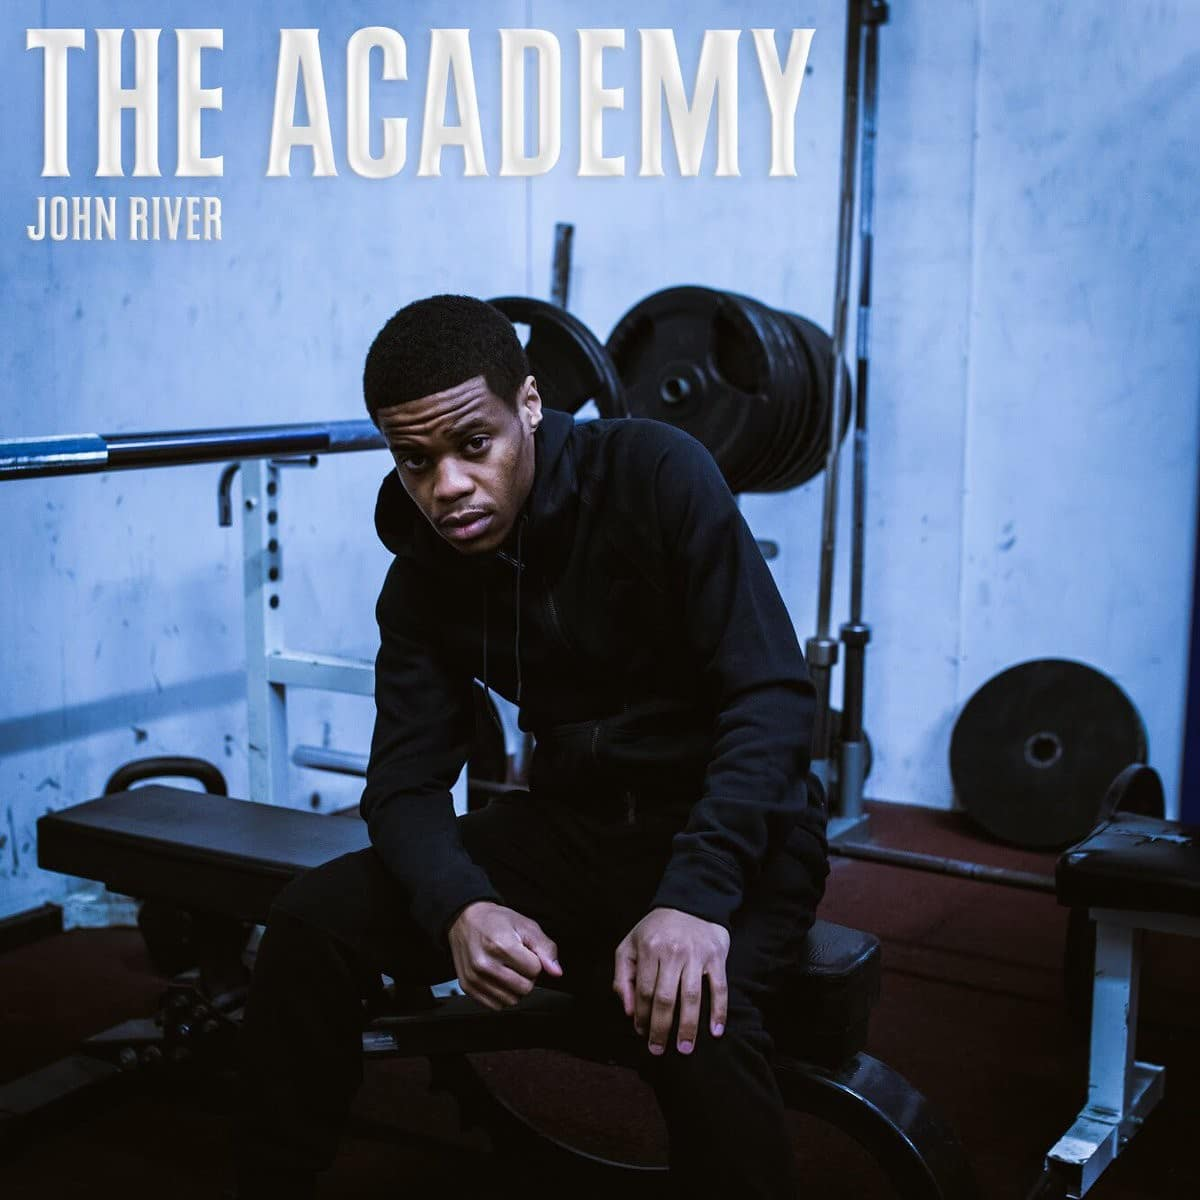 Album Image for John River - The Academy (Released 2019-01-25  by )